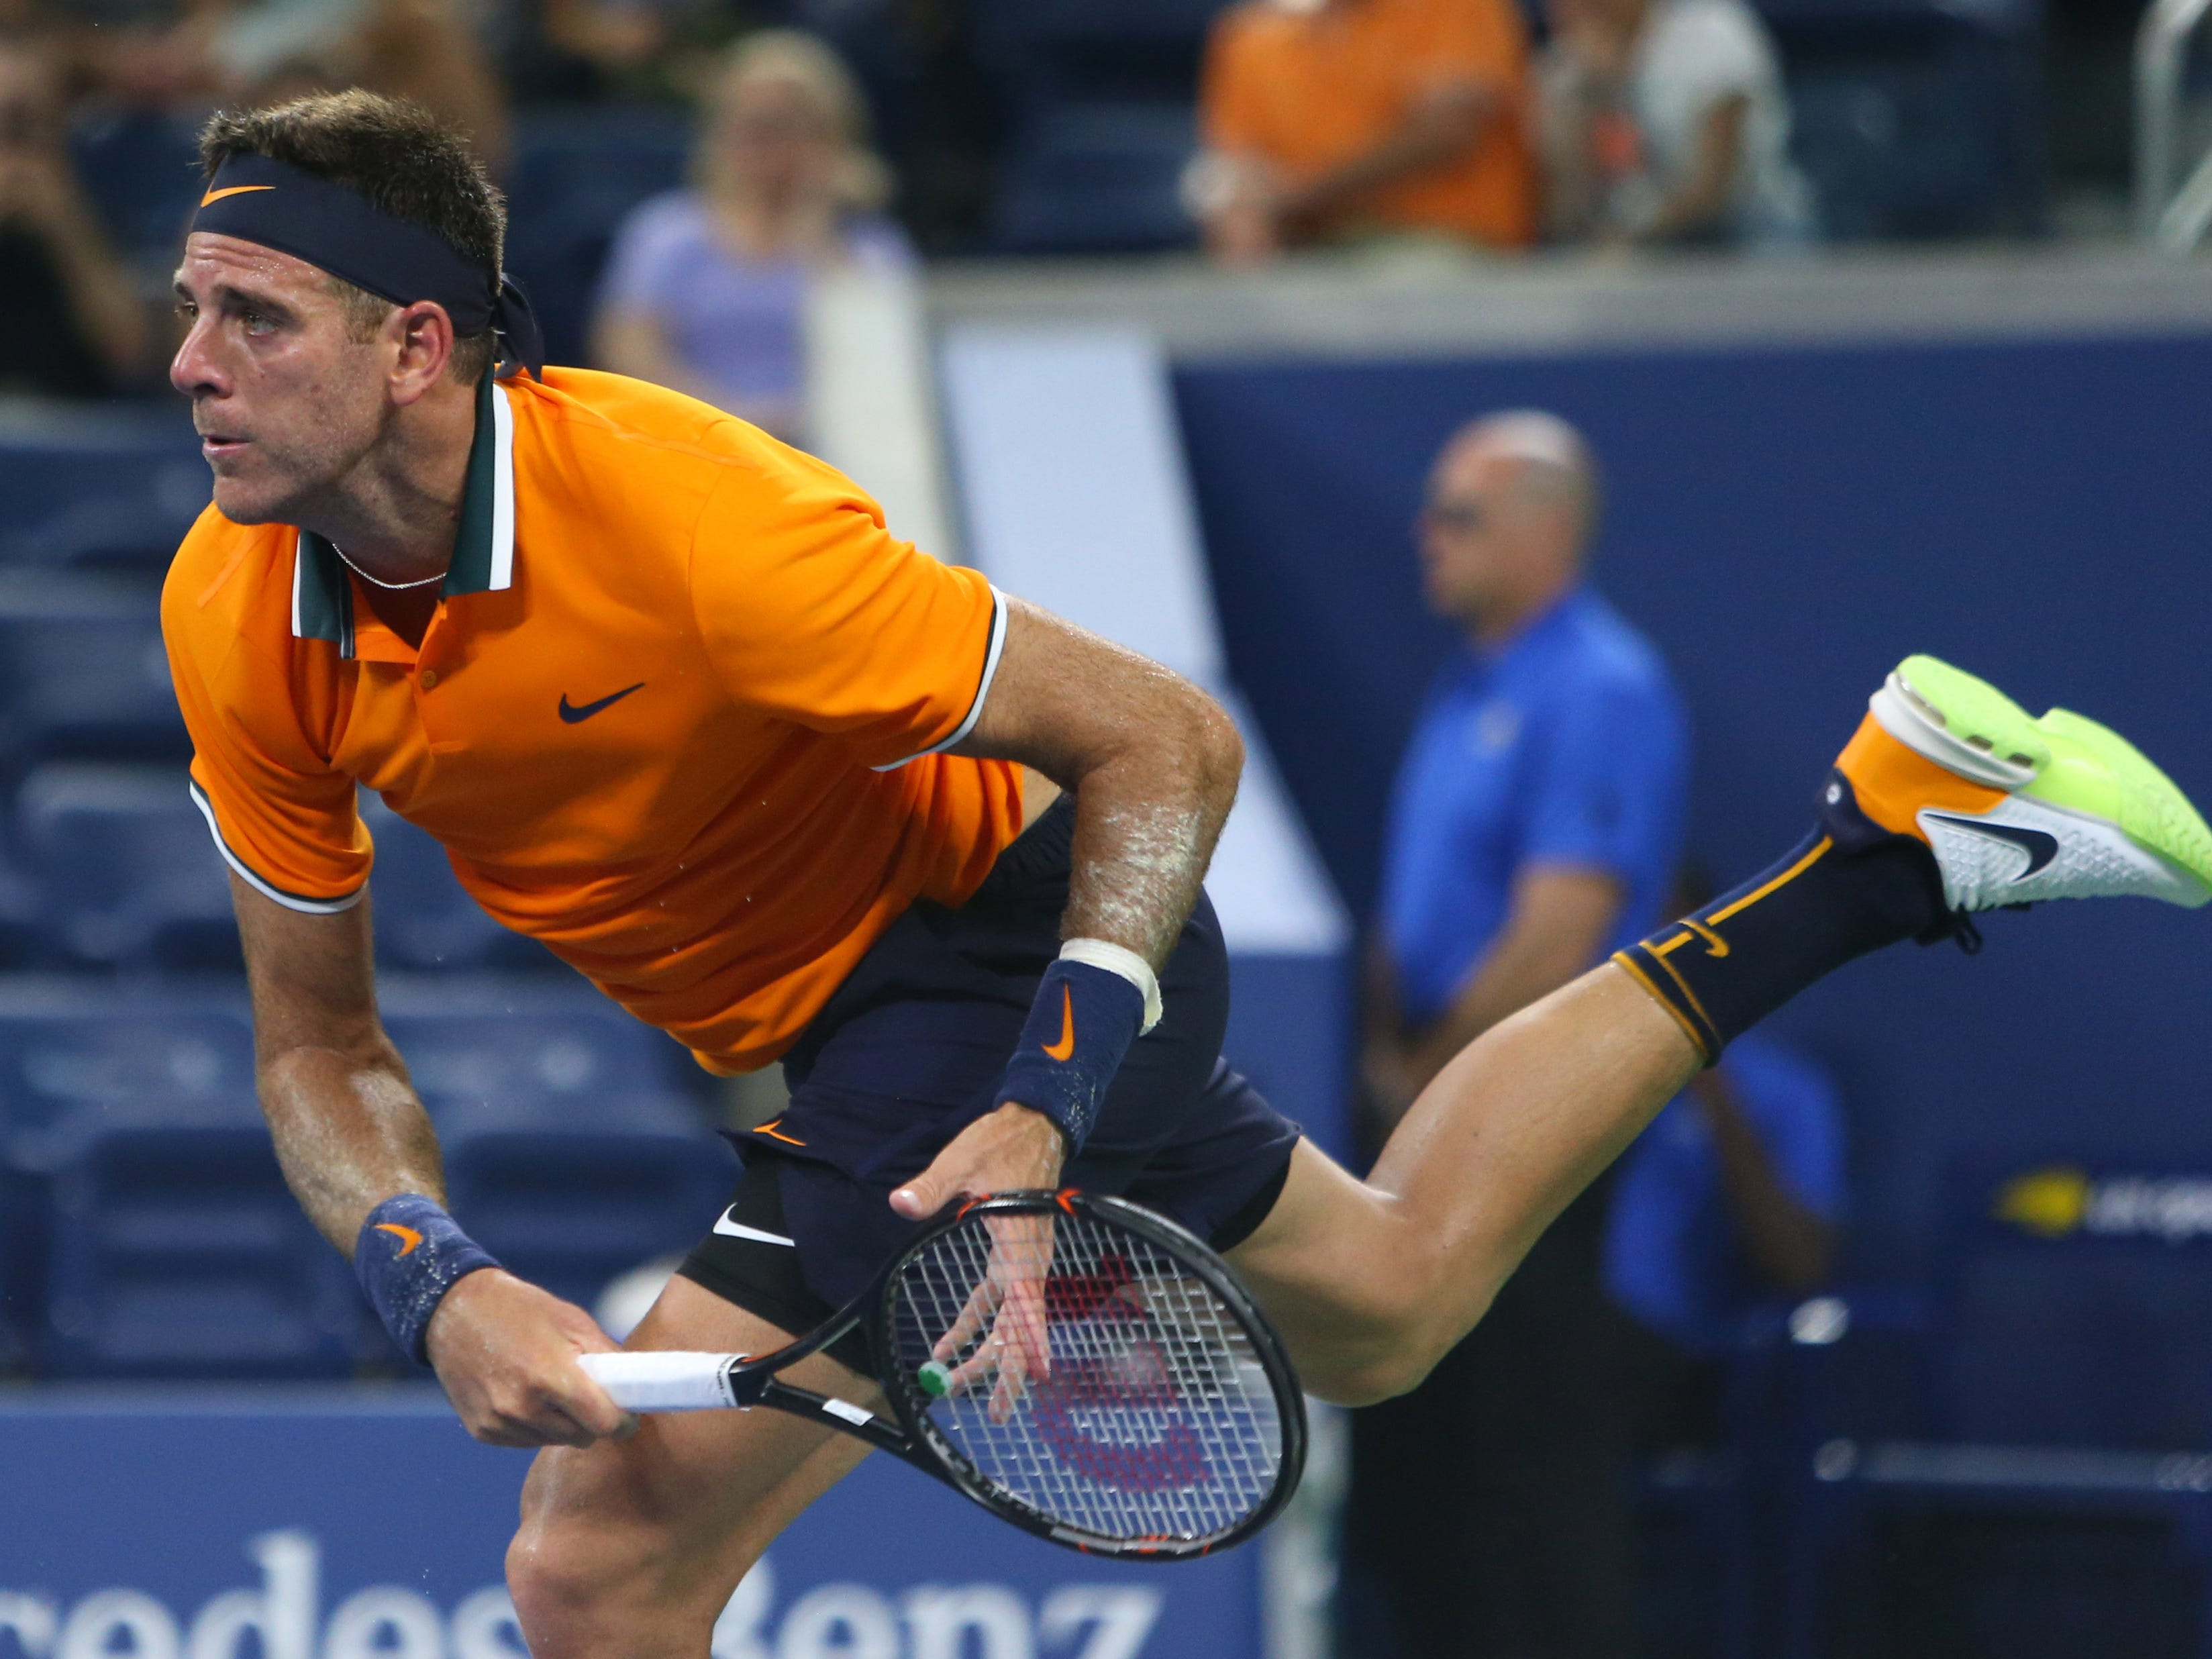 Juan Martin Del Potro of Argentina breezes past Donald Young of the USA 6-0, 6-3, 6-4.